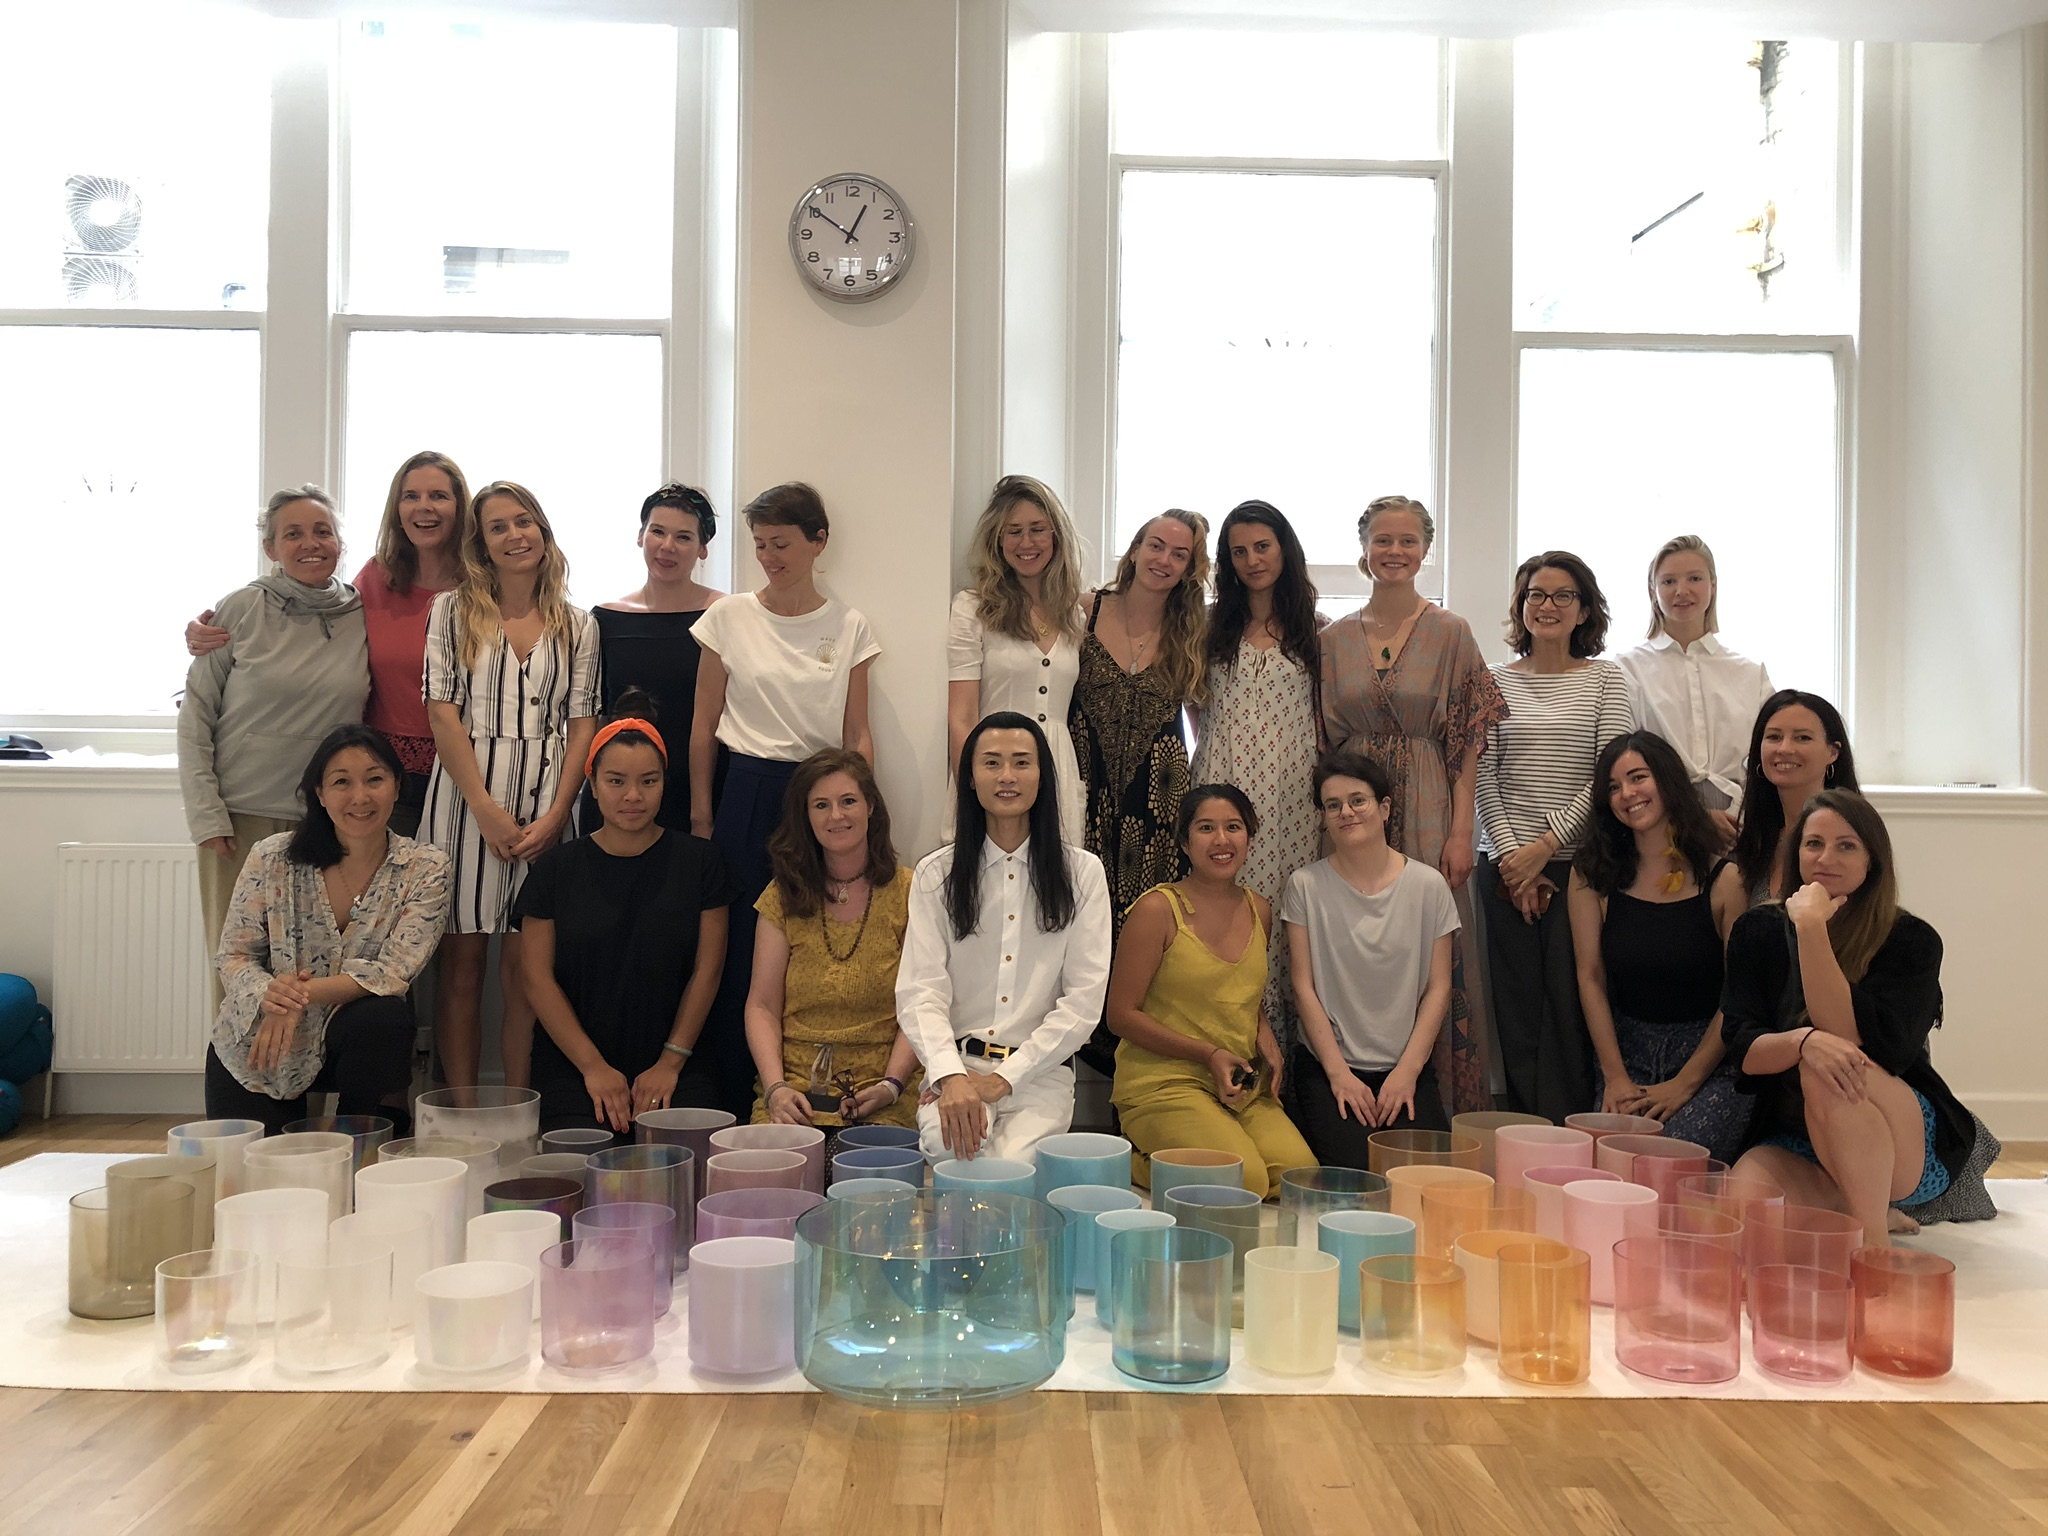 Events and workshops run by Kate and Yantara   Discover more